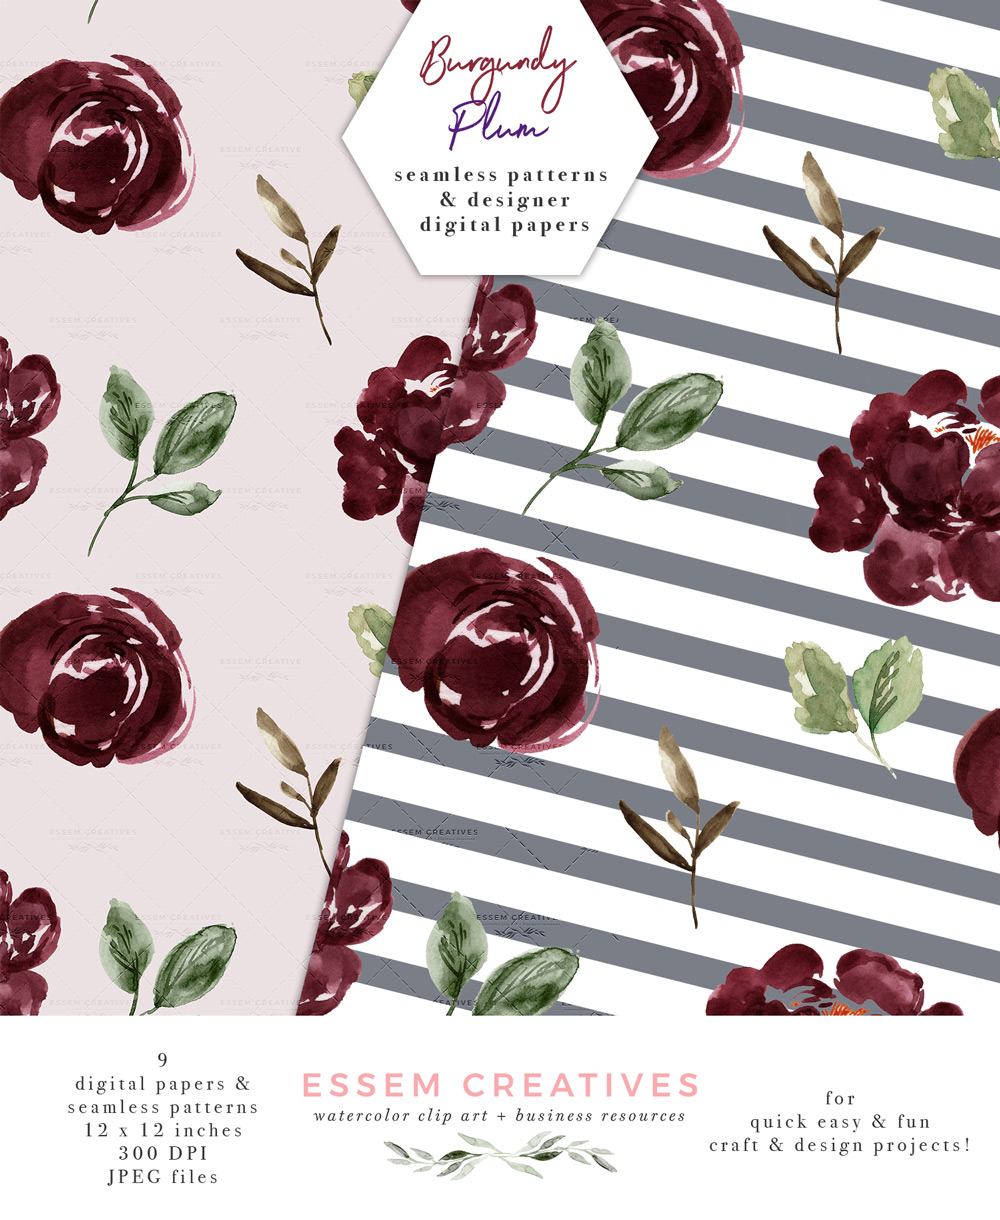 Floral Digital Paper, Burgundy Blush Watercolor Fall Scrapbooking Paper  Seamless Repeat Patterns.